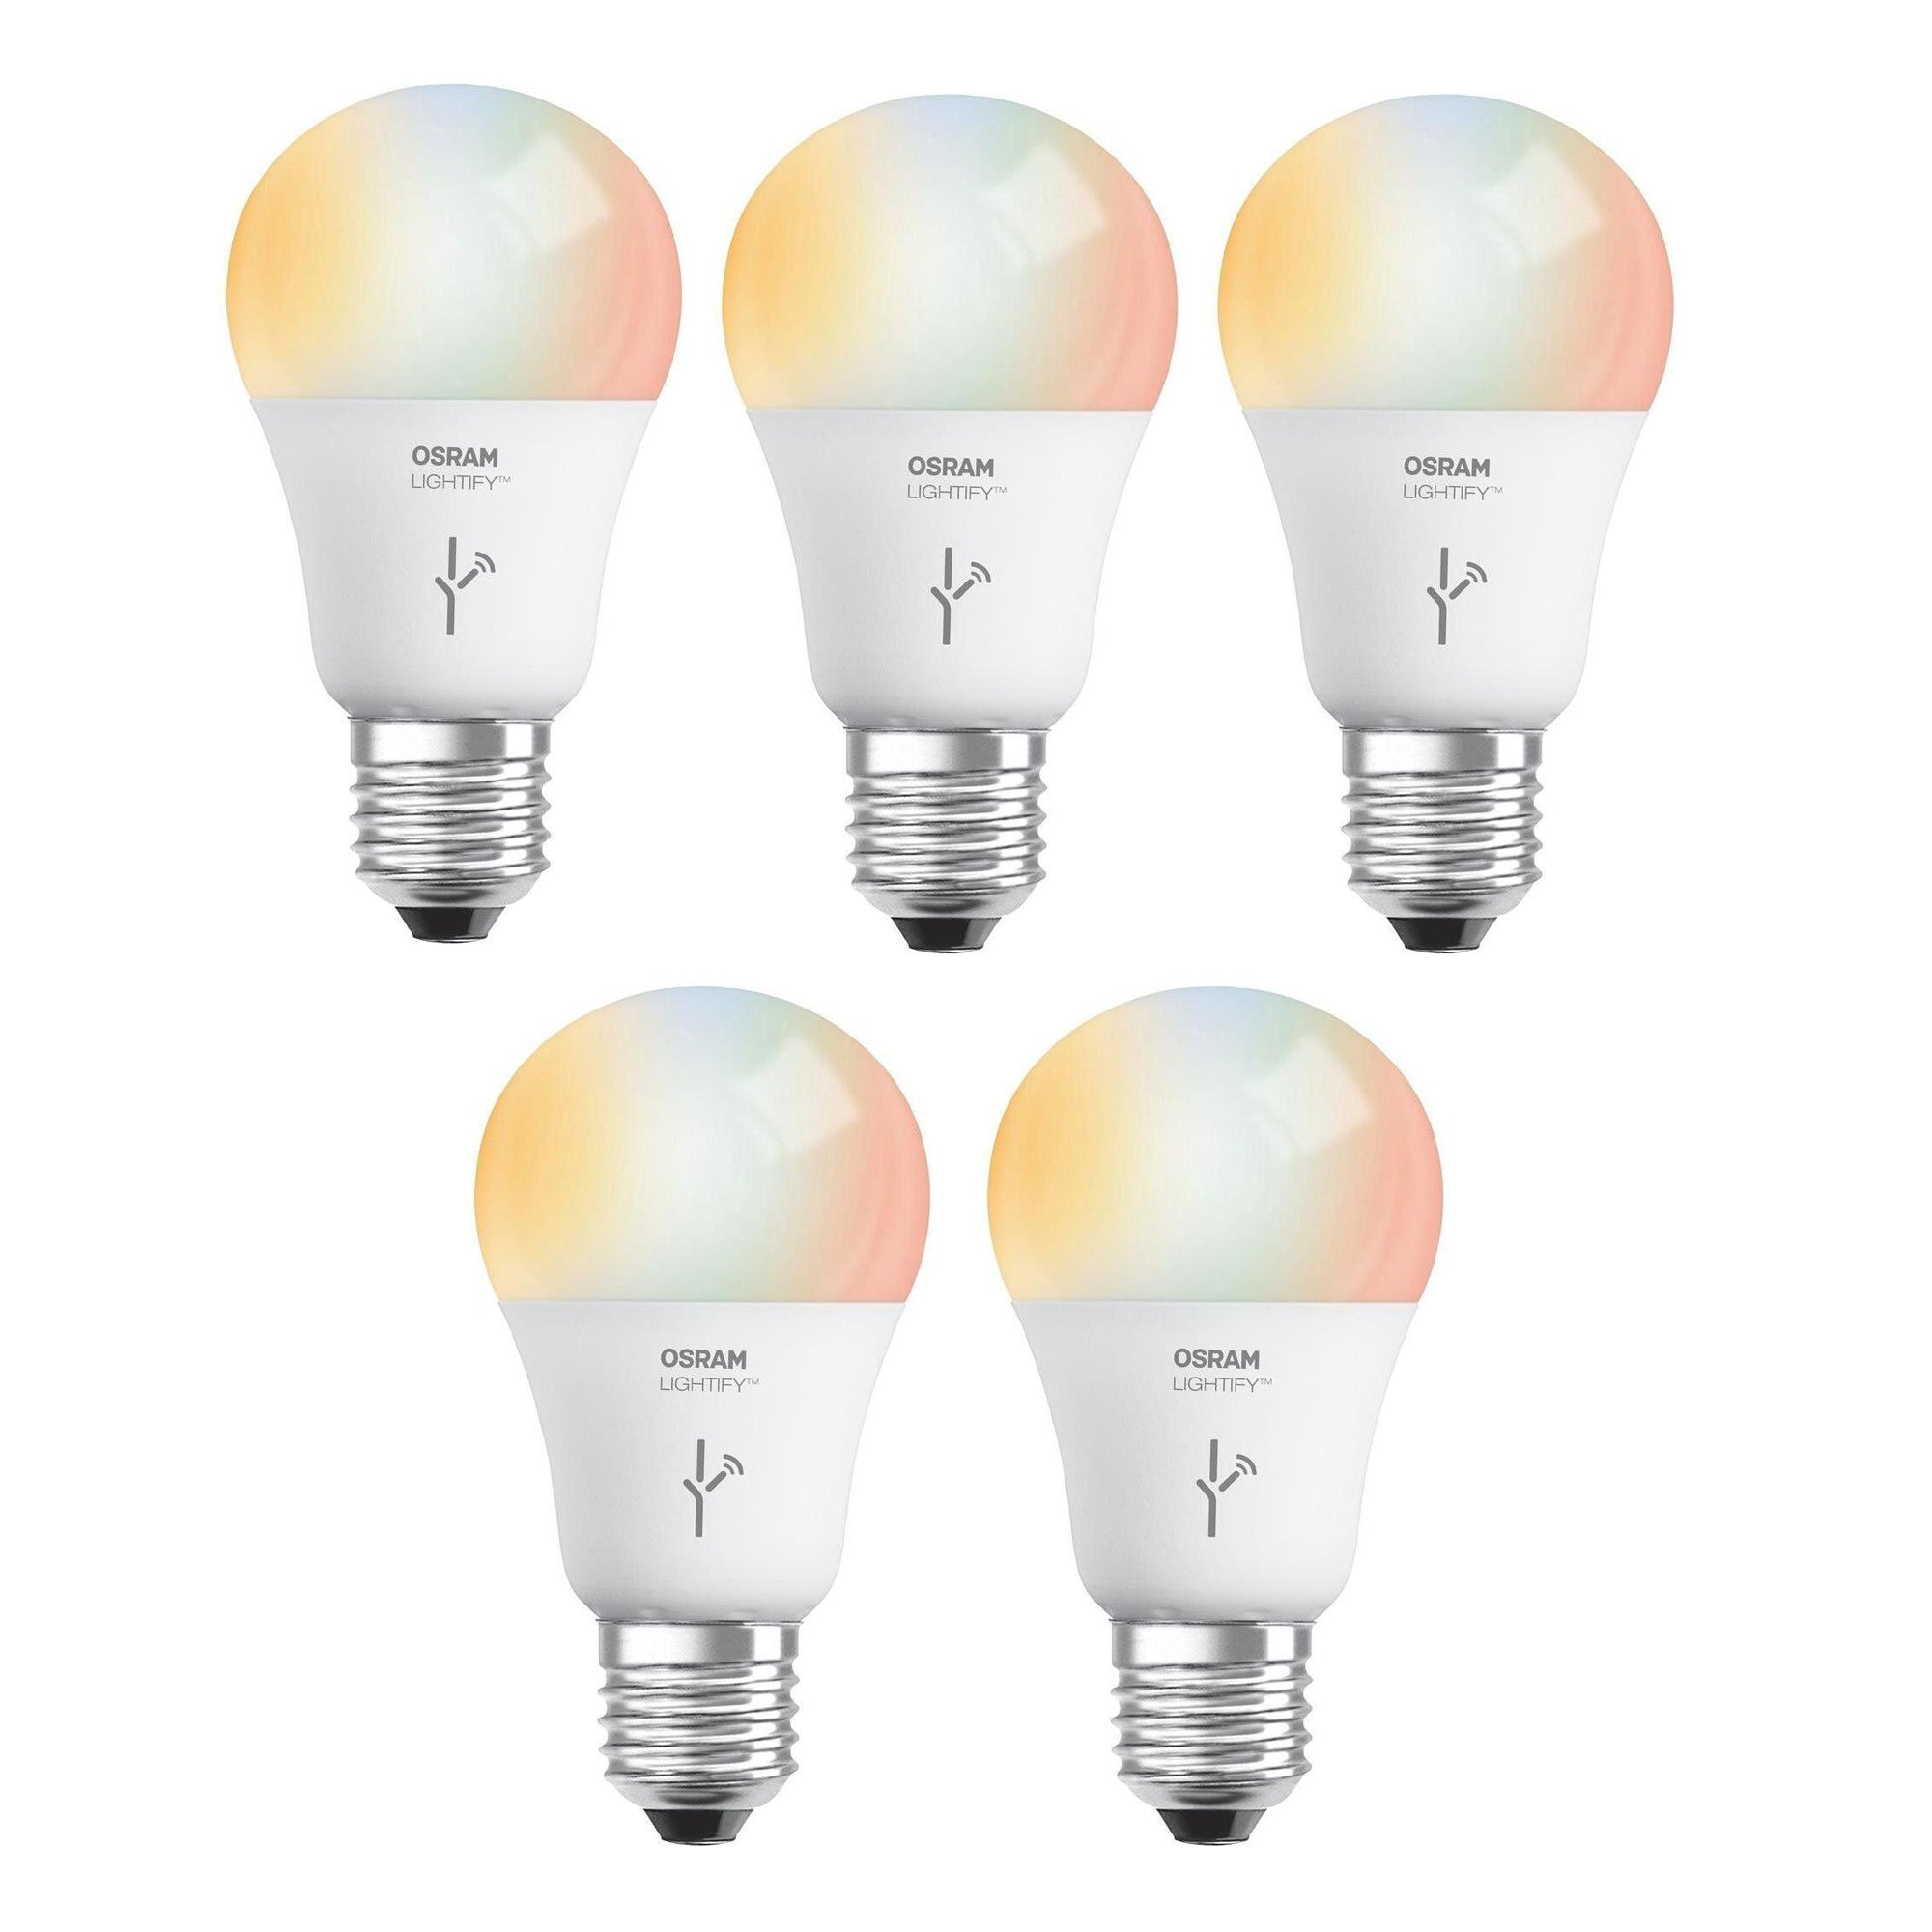 Sylvania Osram Lightify 60W A19 Warm 2700K W/D RGB Smart LED Light Bulb (5 Pack)